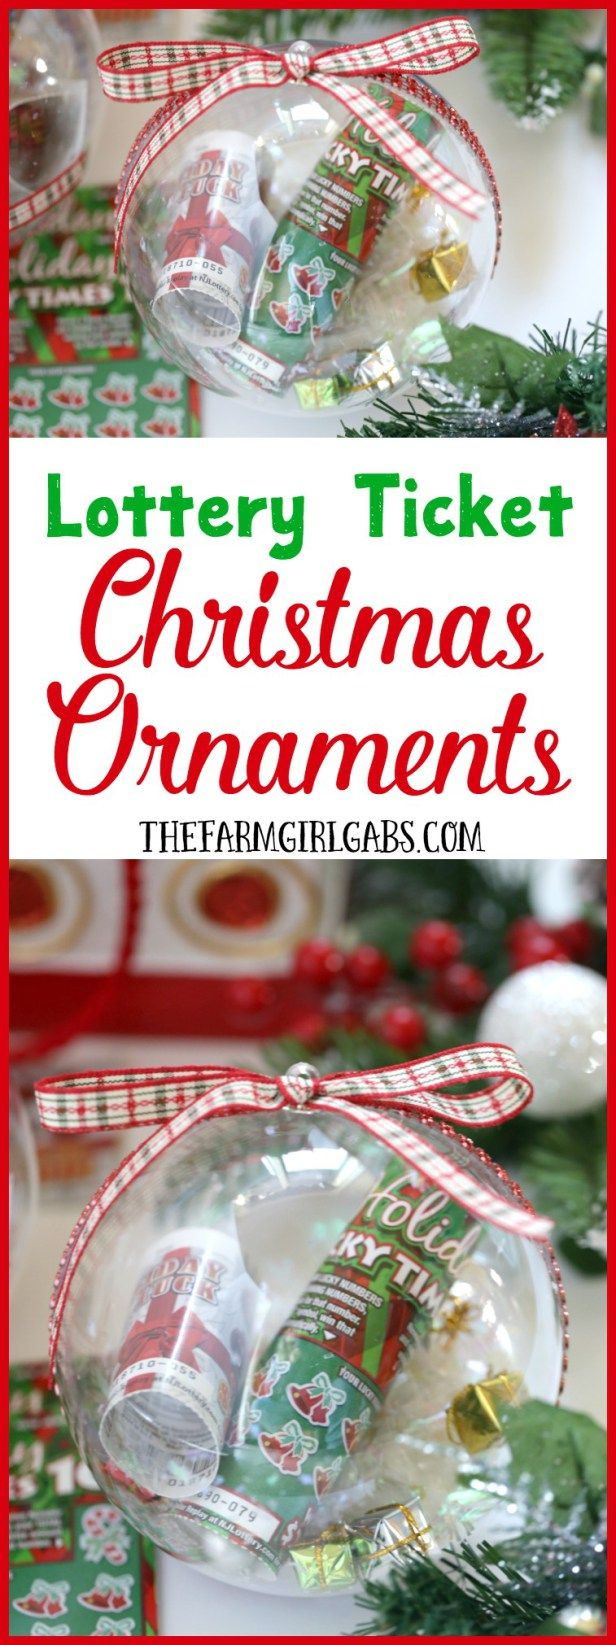 Gift the gift of lottery luck this holiday season with these fun New Jersey Lottery Ticket Christmas Ornaments. This easy DIY craft is the perfect gift idea!